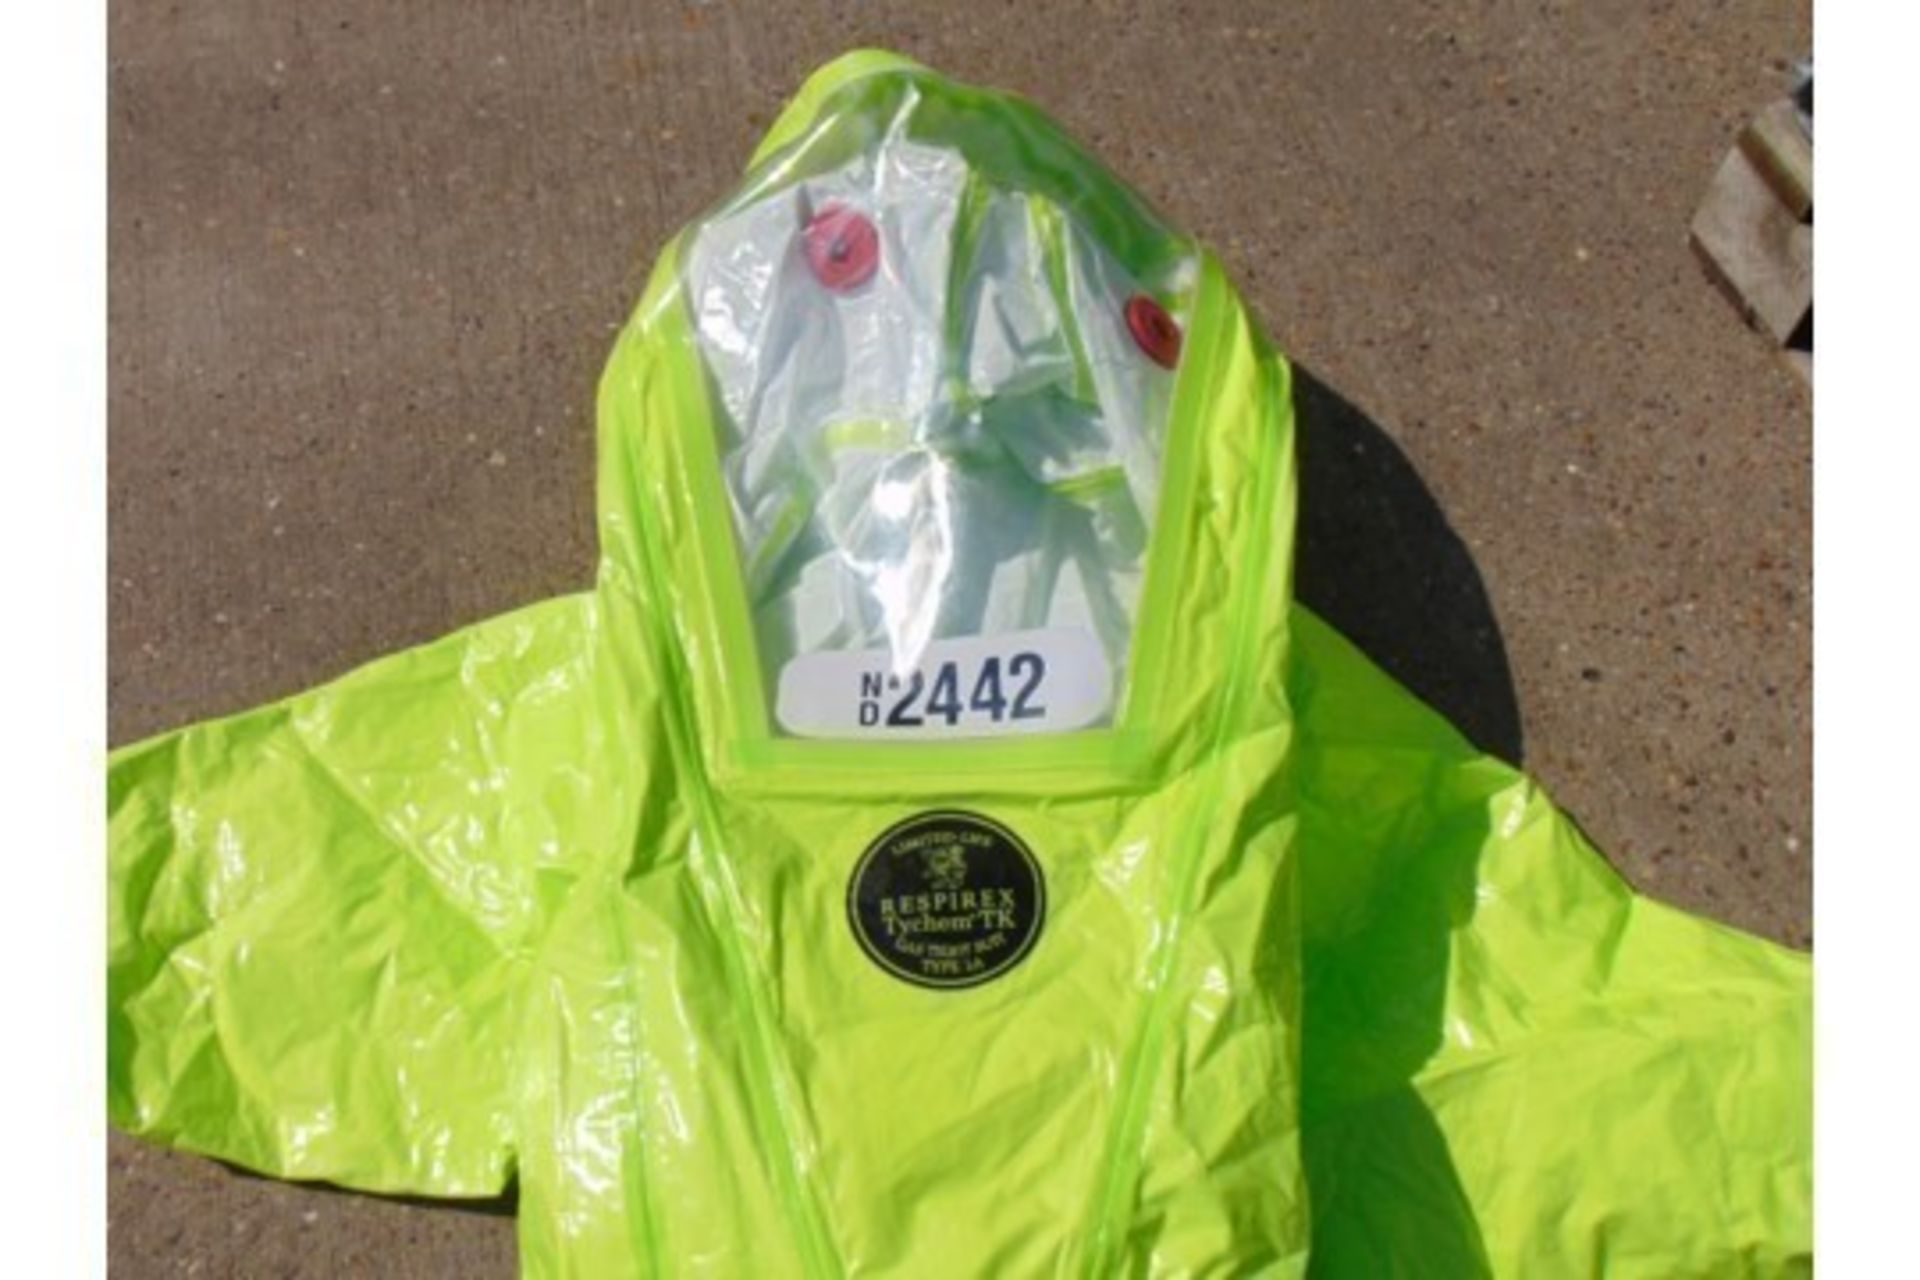 Lot 38 - Unissued Respirex Tychem TK Gas-Tight Hazmat Suit Type 1A with Attached Boots and Gloves MEDIUM